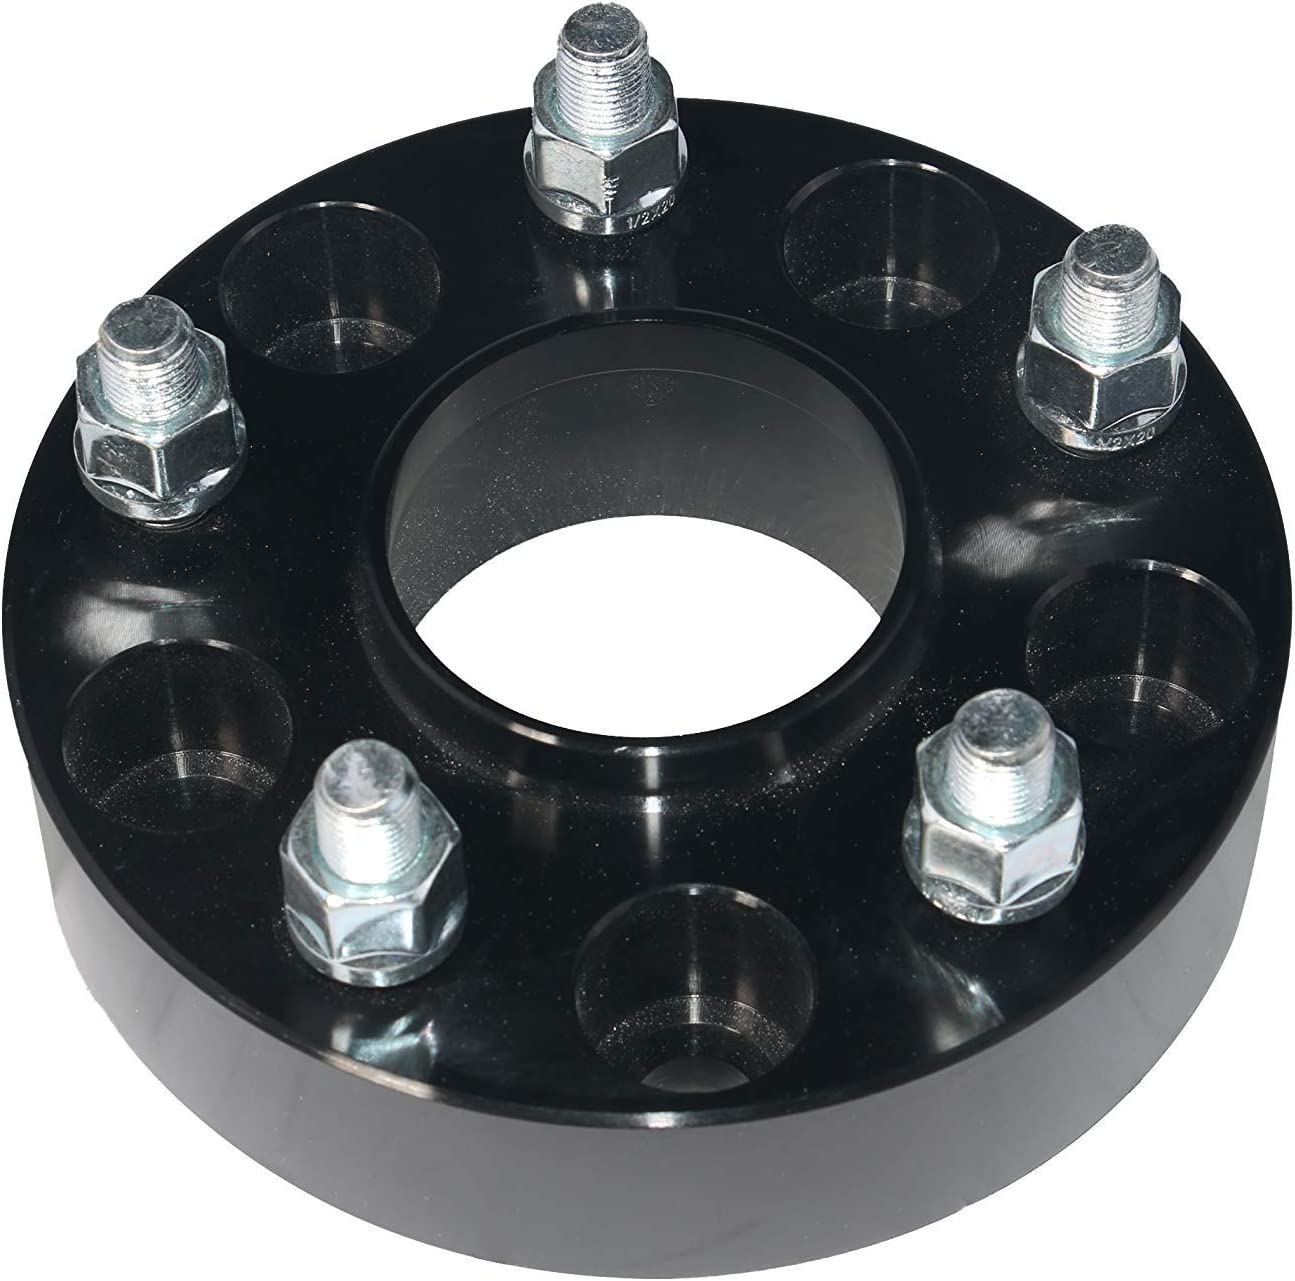 Wheel Spacer Set of 4-5x5 Bolt Pattern 1//2 x 20 Studs 1.5 Thick 06-10 Commander Renewed Fits 2007-2018 Jeep Wrangler 2005-2010 Grand Cherokee 5x127mm /& Wheel Centric Adapter 71.5mm Hub Bore